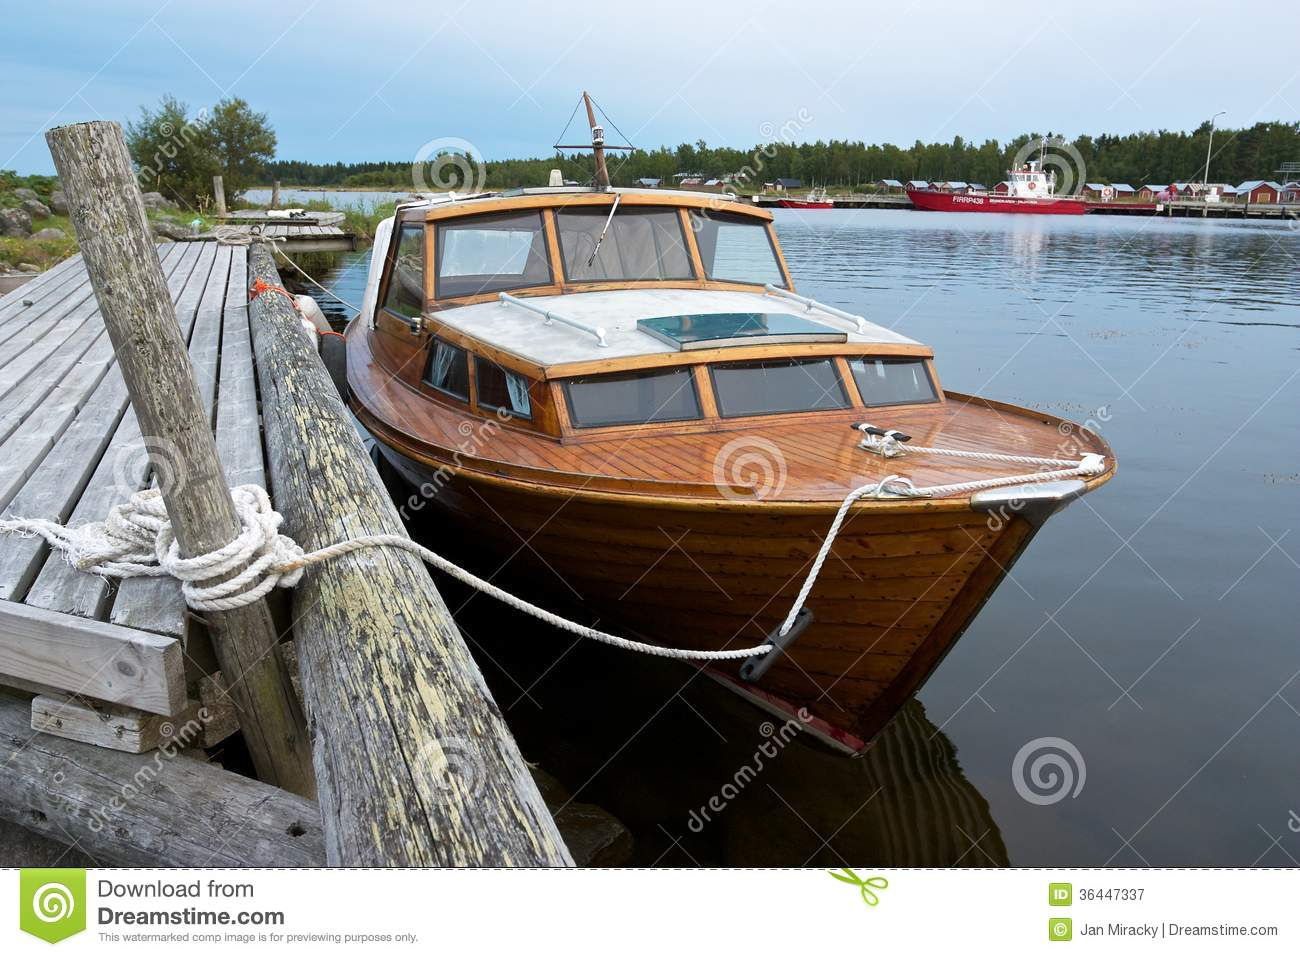 Boat At Anchor In Replot Pier Stock Image - Image: 36447337